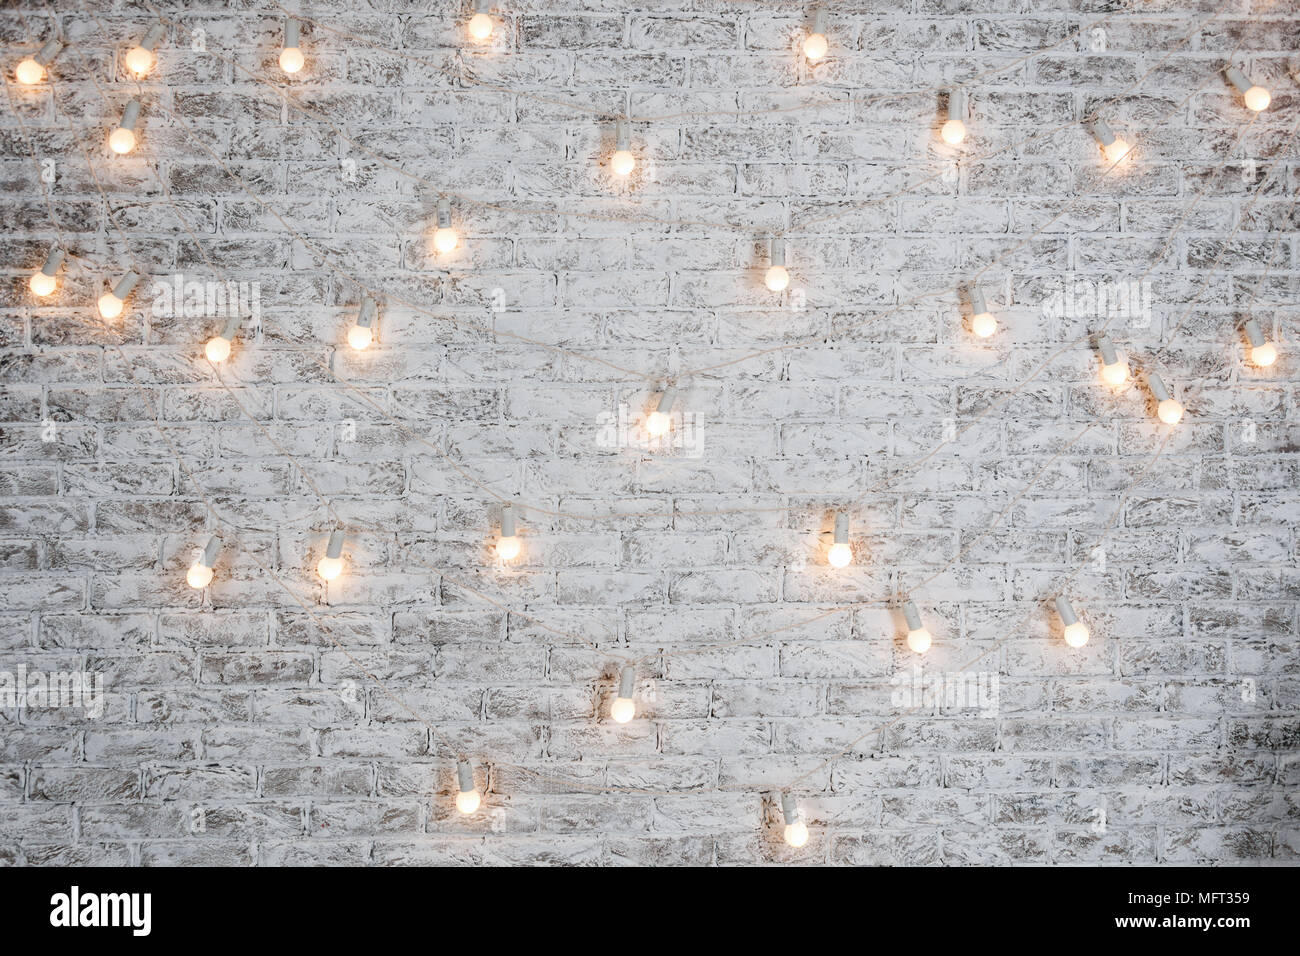 Great Light Bulbs On White Brick Background. Vintage Edison Light Bulbs Garland  In Loft Interior. Rustic Texture. Retro Whitewashed Old Brick Wall Surface.